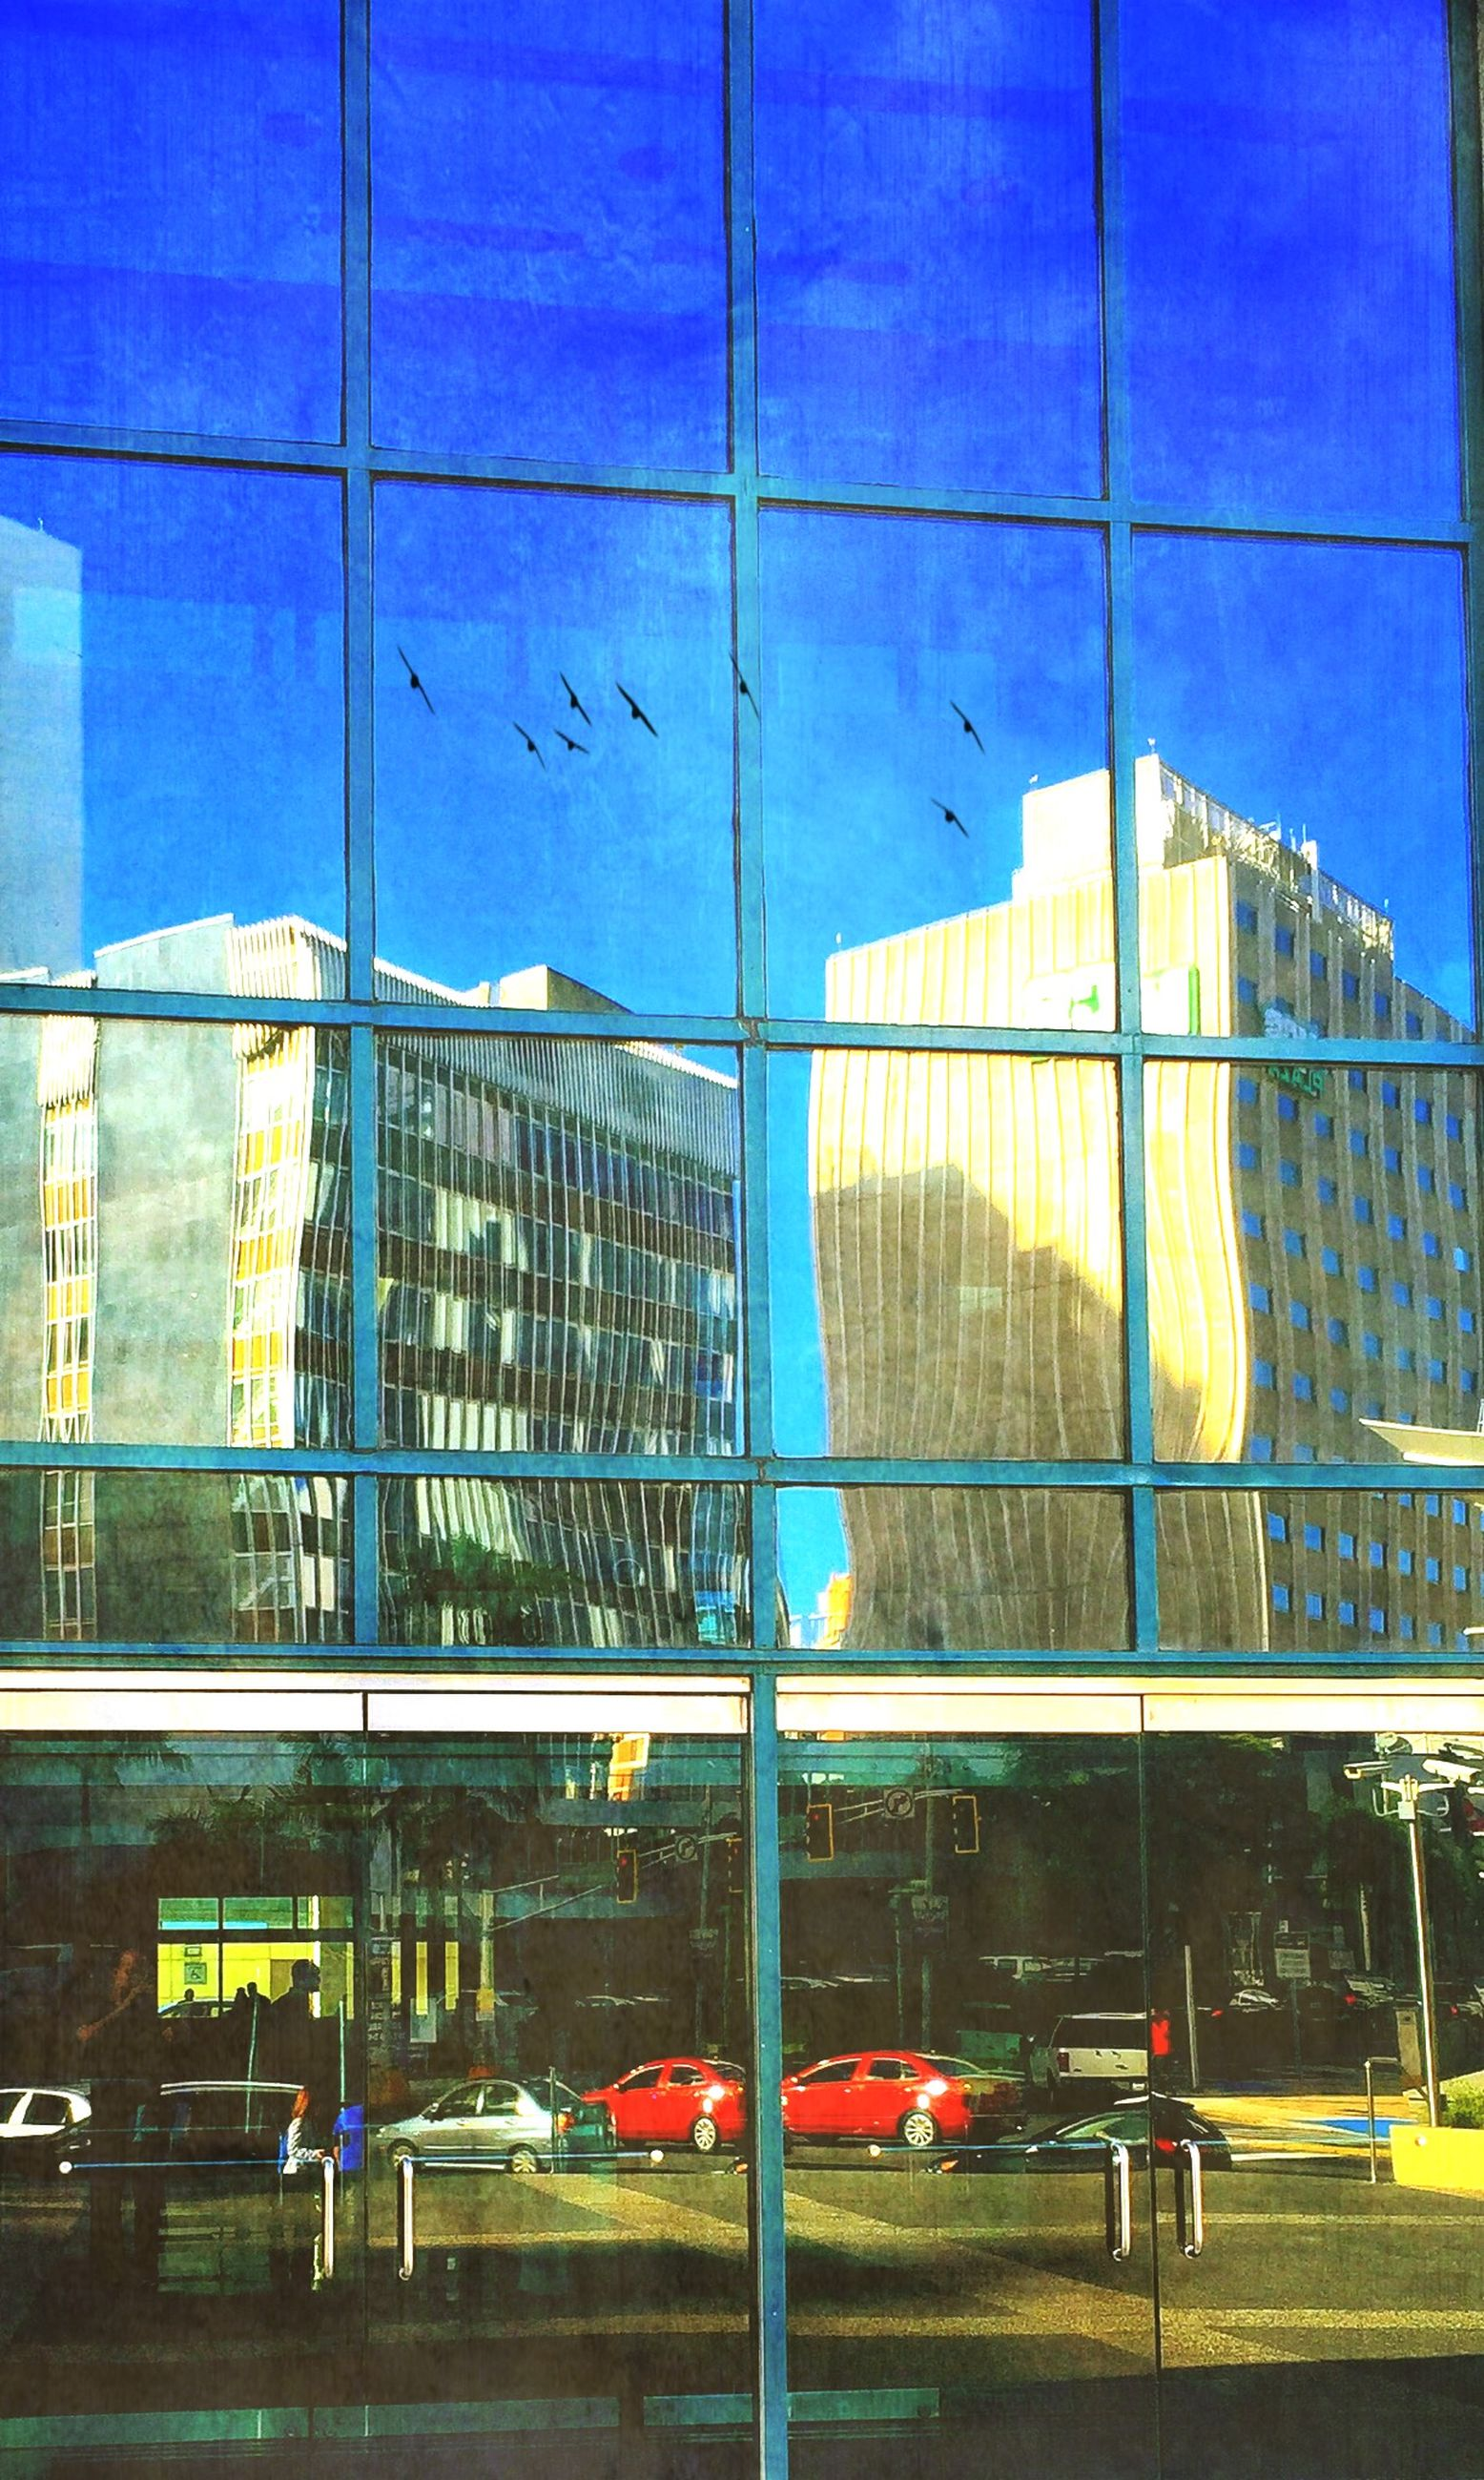 architecture, built structure, building exterior, city, glass - material, transportation, modern, blue, window, building, reflection, land vehicle, office building, mode of transport, transparent, city life, street, road, day, car